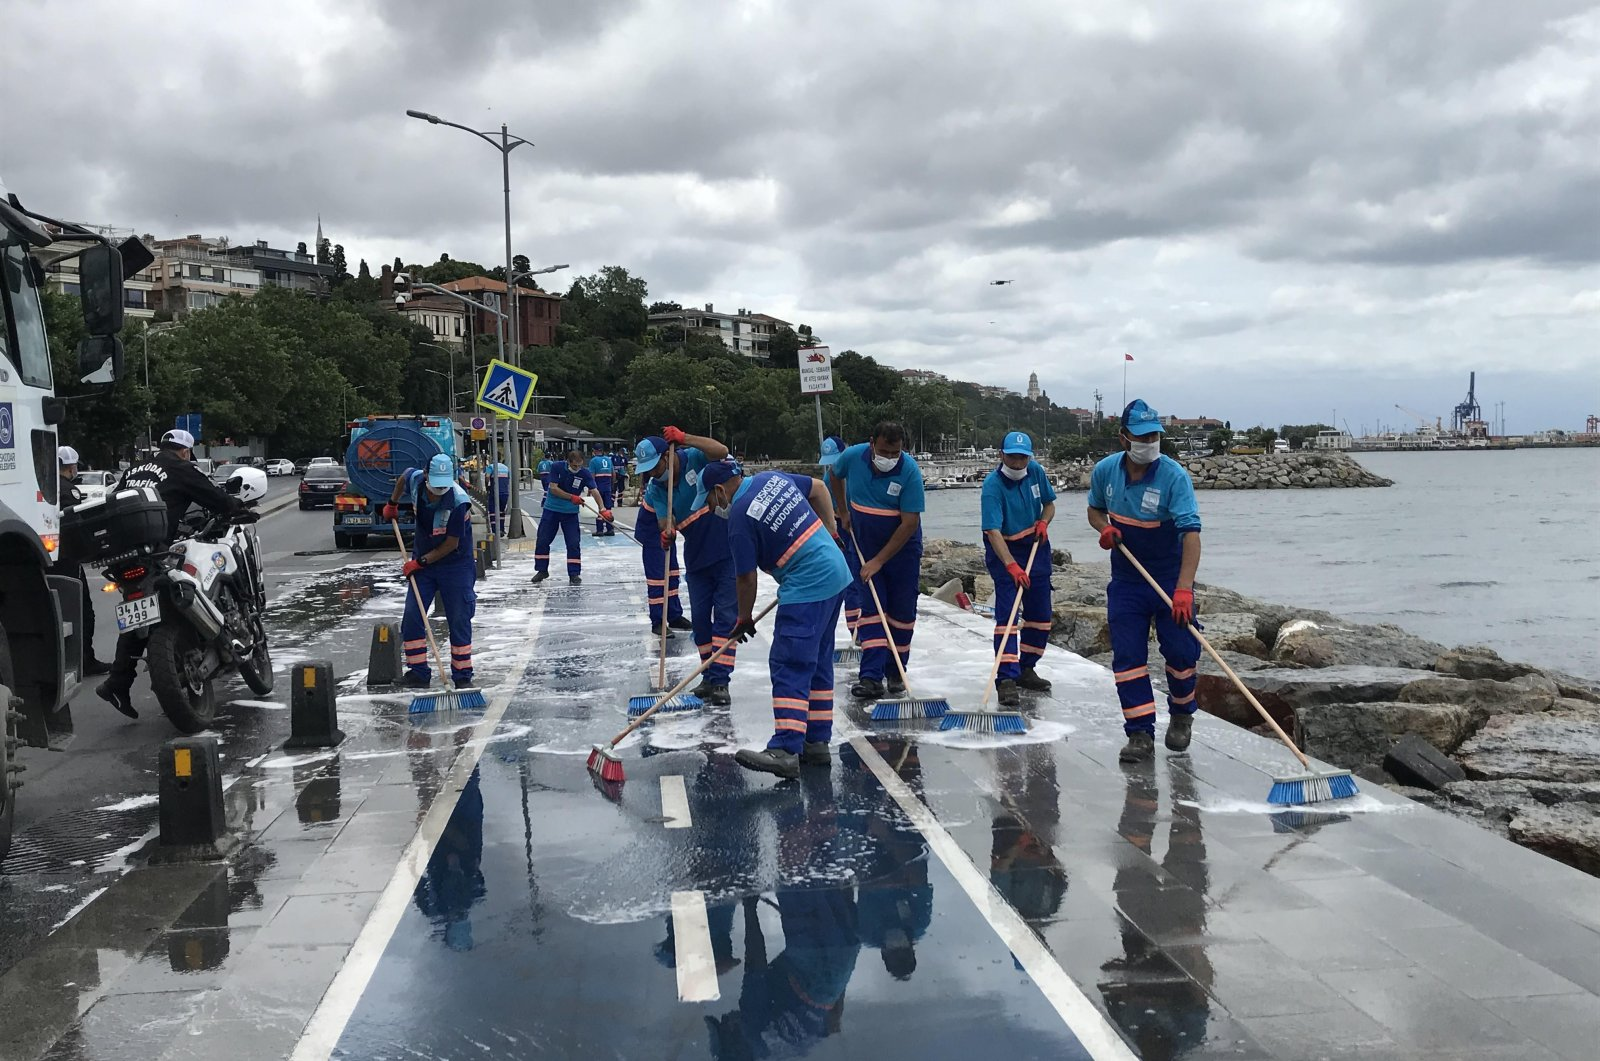 Municipality crews clean up the coast in the Üsküdar district of Istanbul, Turkey, July 8, 2020. (İHA Photo)